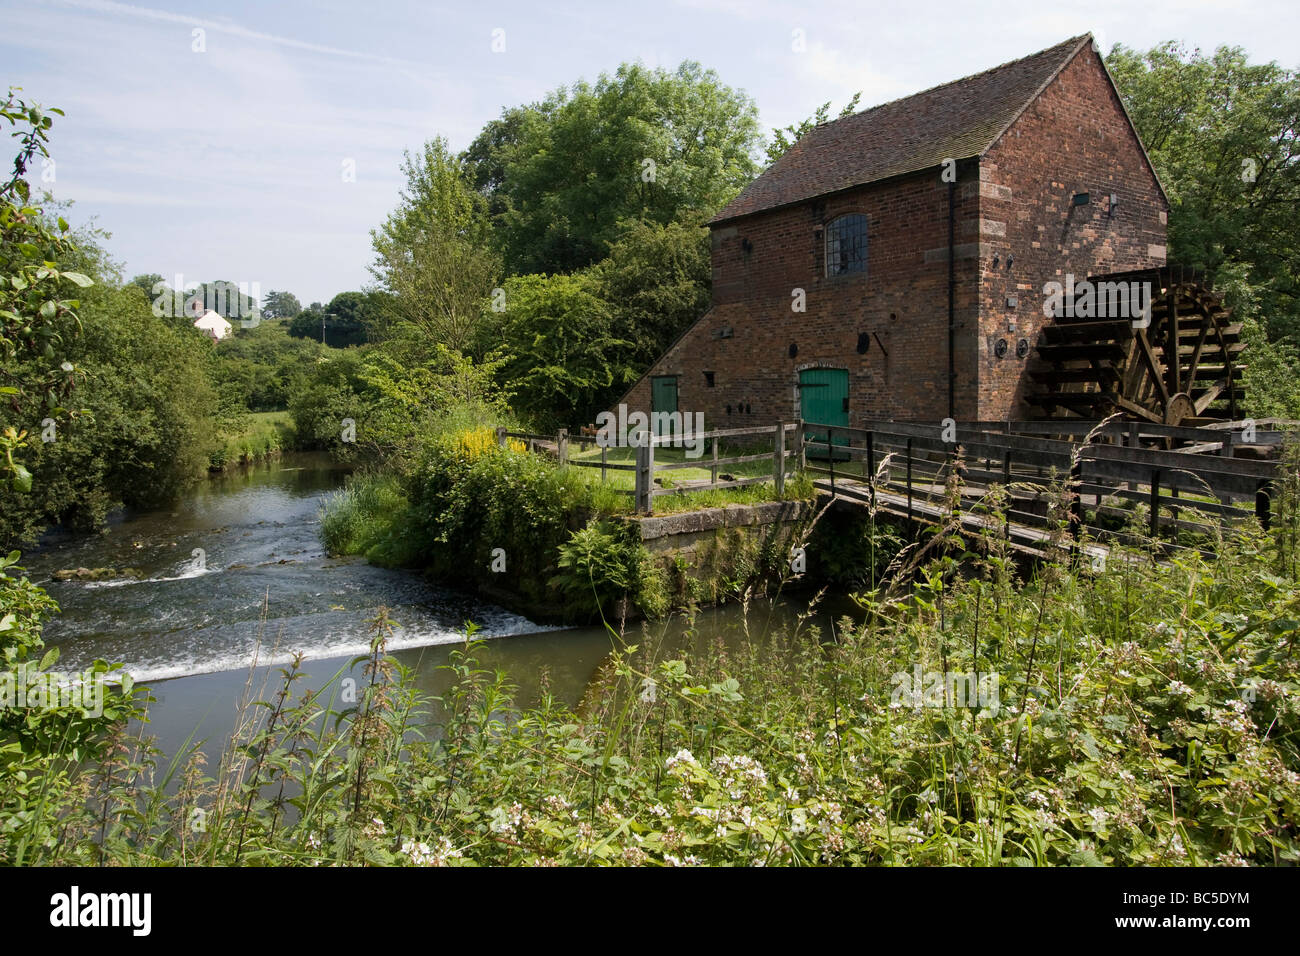 Cheddleton Flint Mill is a water mill situated in the village of Cheddleton in the English county of Staffordshire. - Stock Image